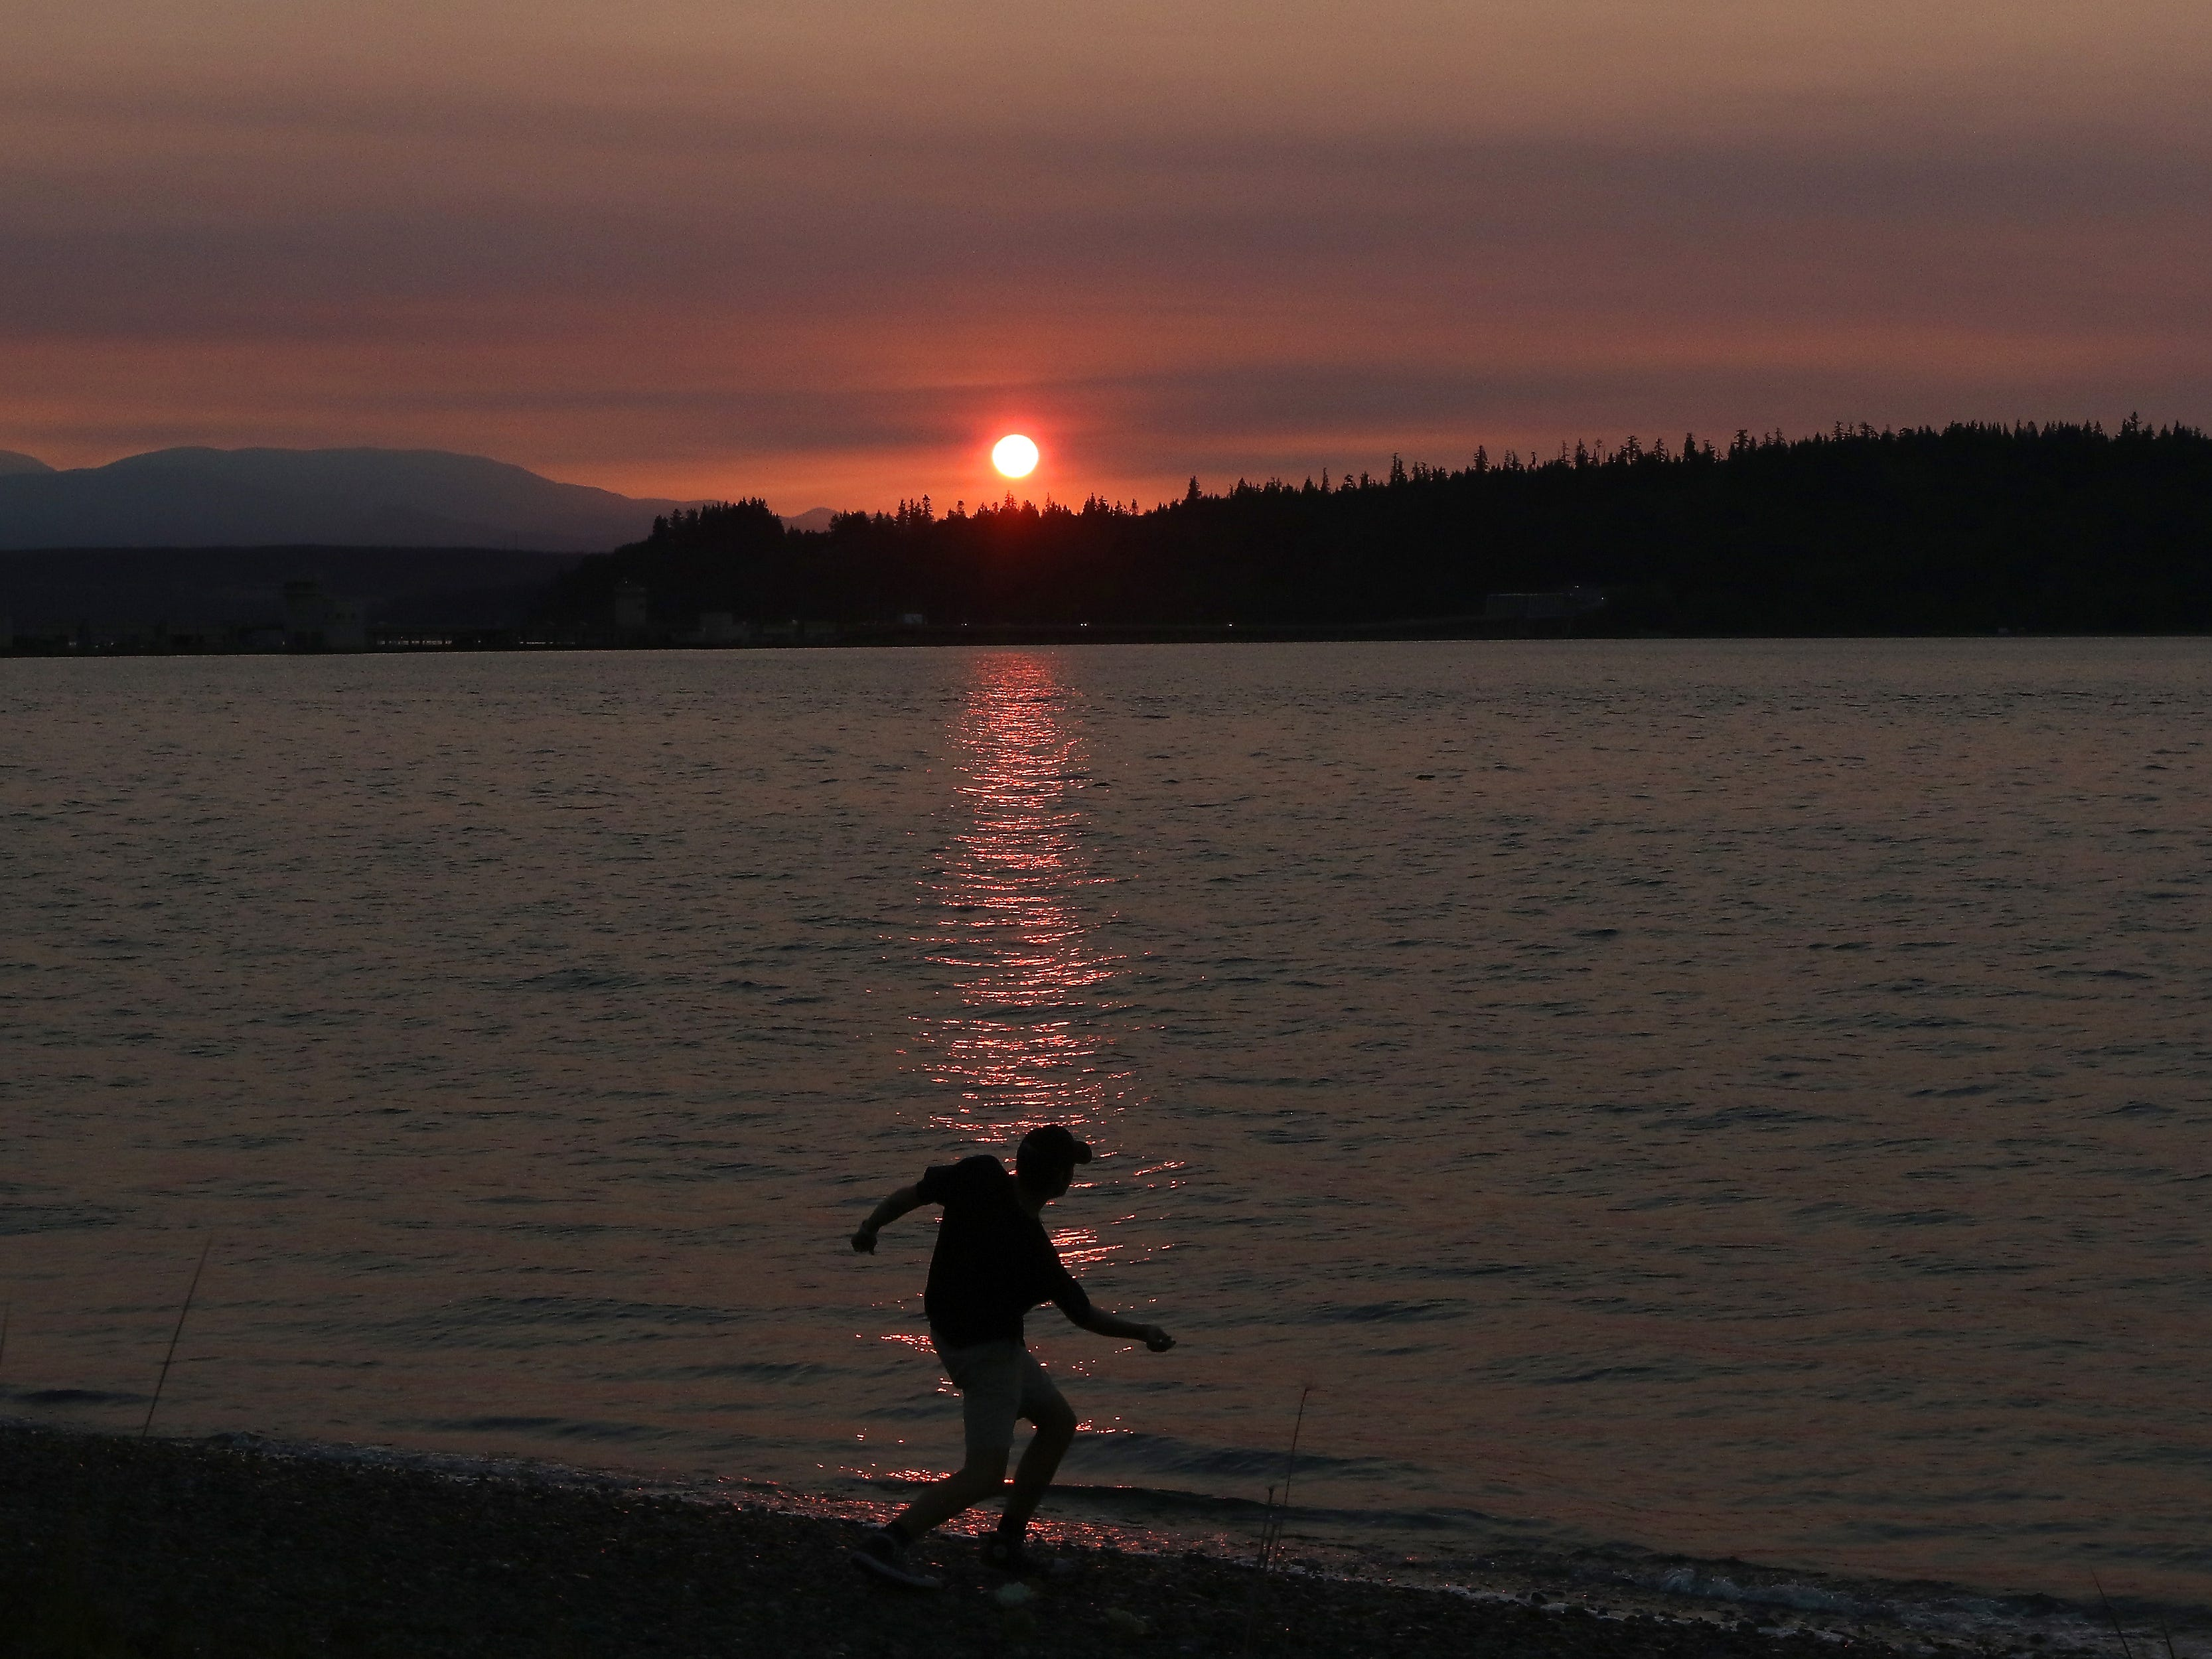 Yakov Chernick, of Indianola, skips rocks as the sun sets through the smokey haze at Salsbury Point County Park near Port Gamble on Thursday, August 9, 2018.